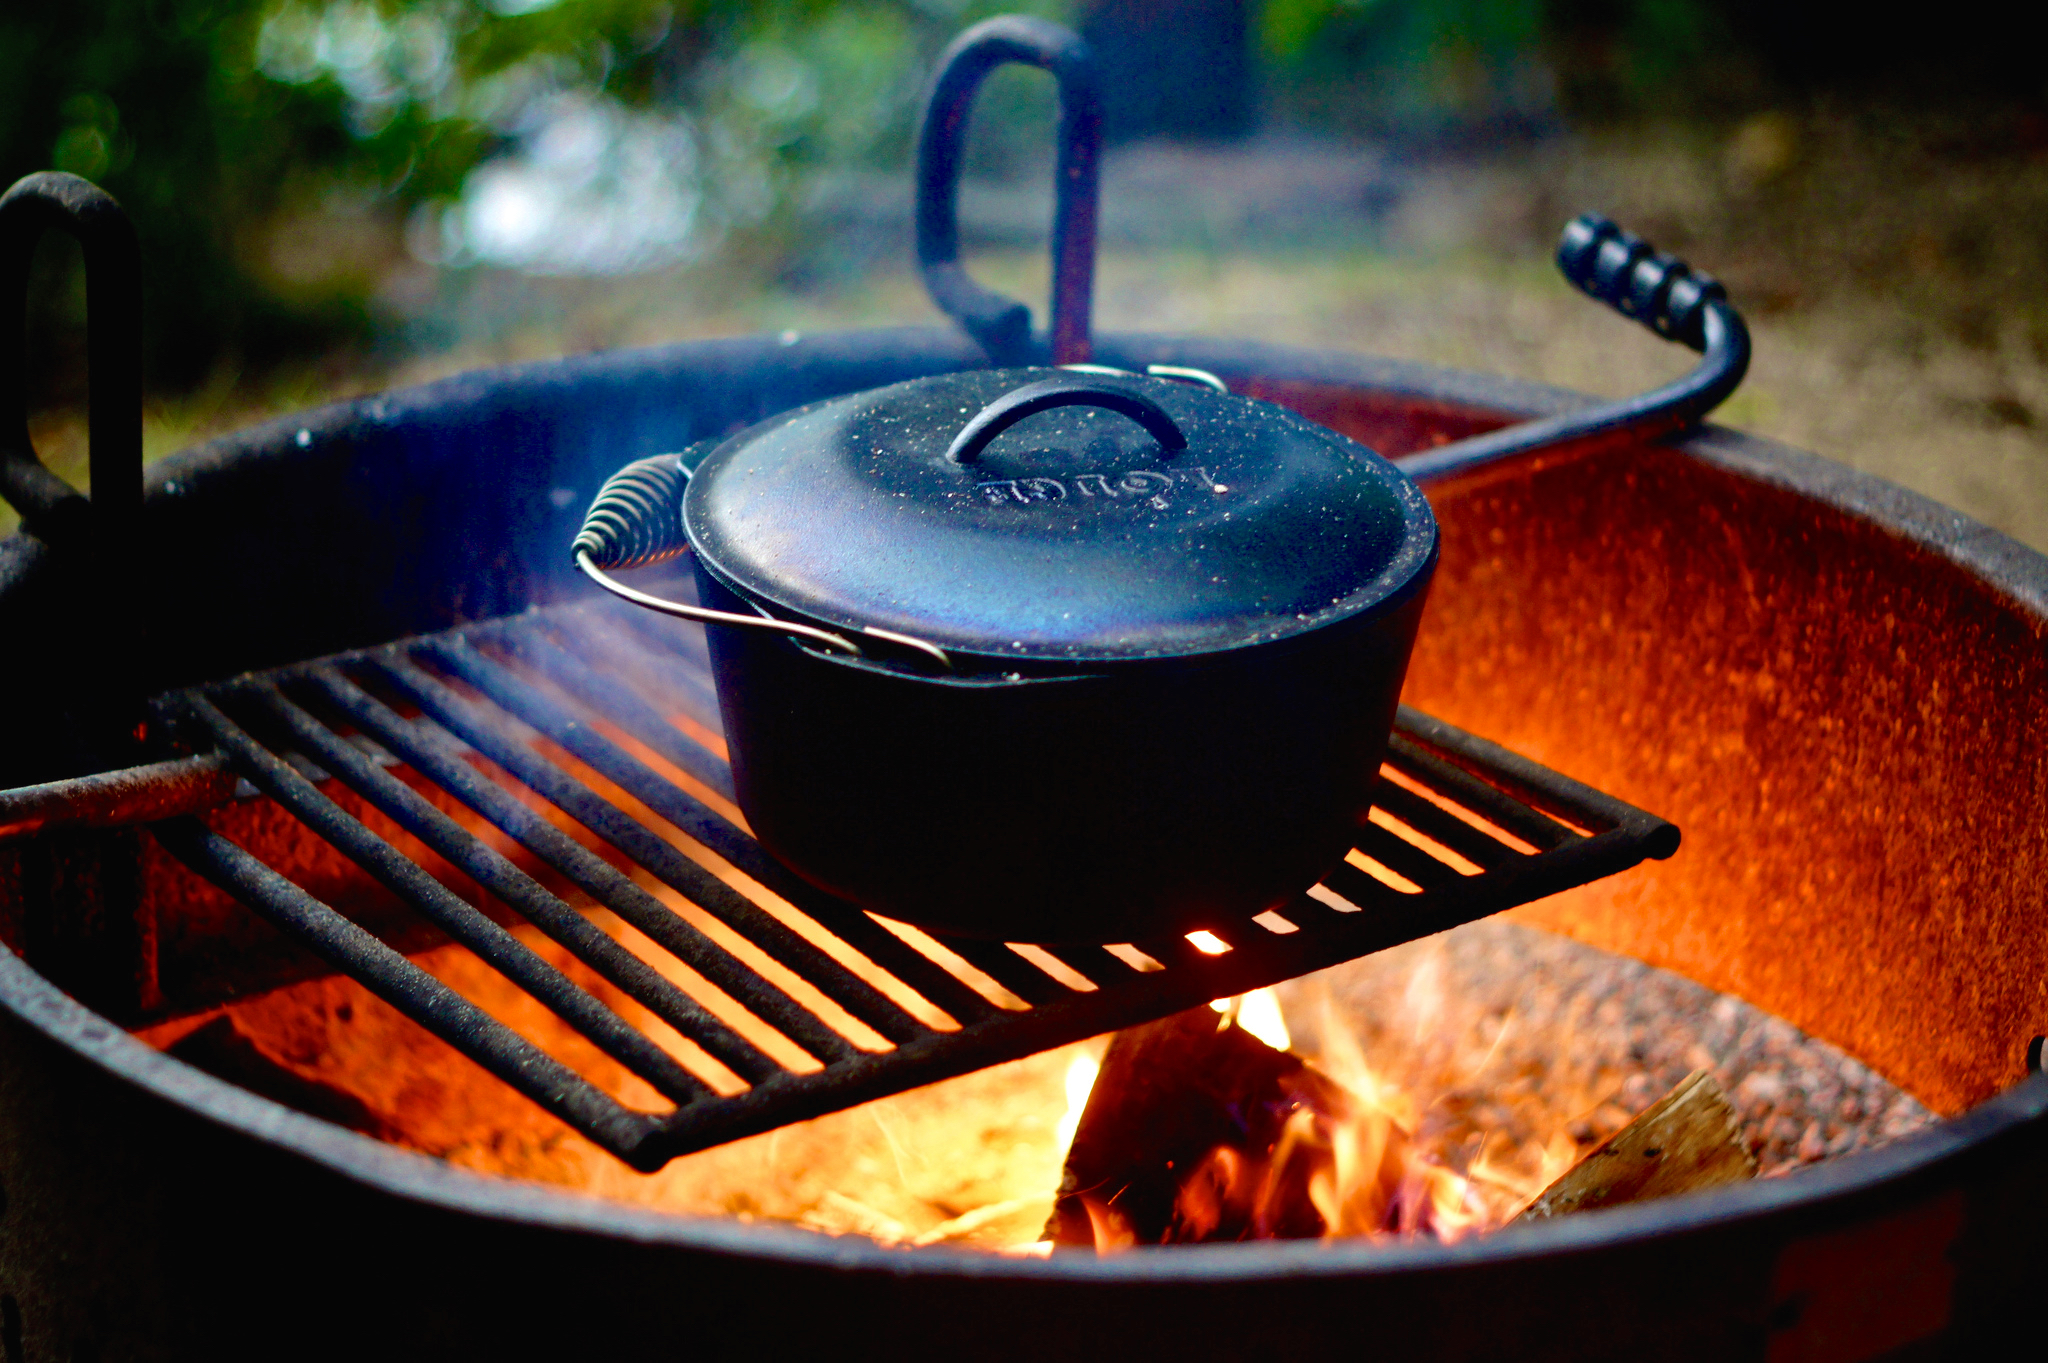 Camp Cooking, Hacked: Bring A Dutch Oven (And Very Little Else)